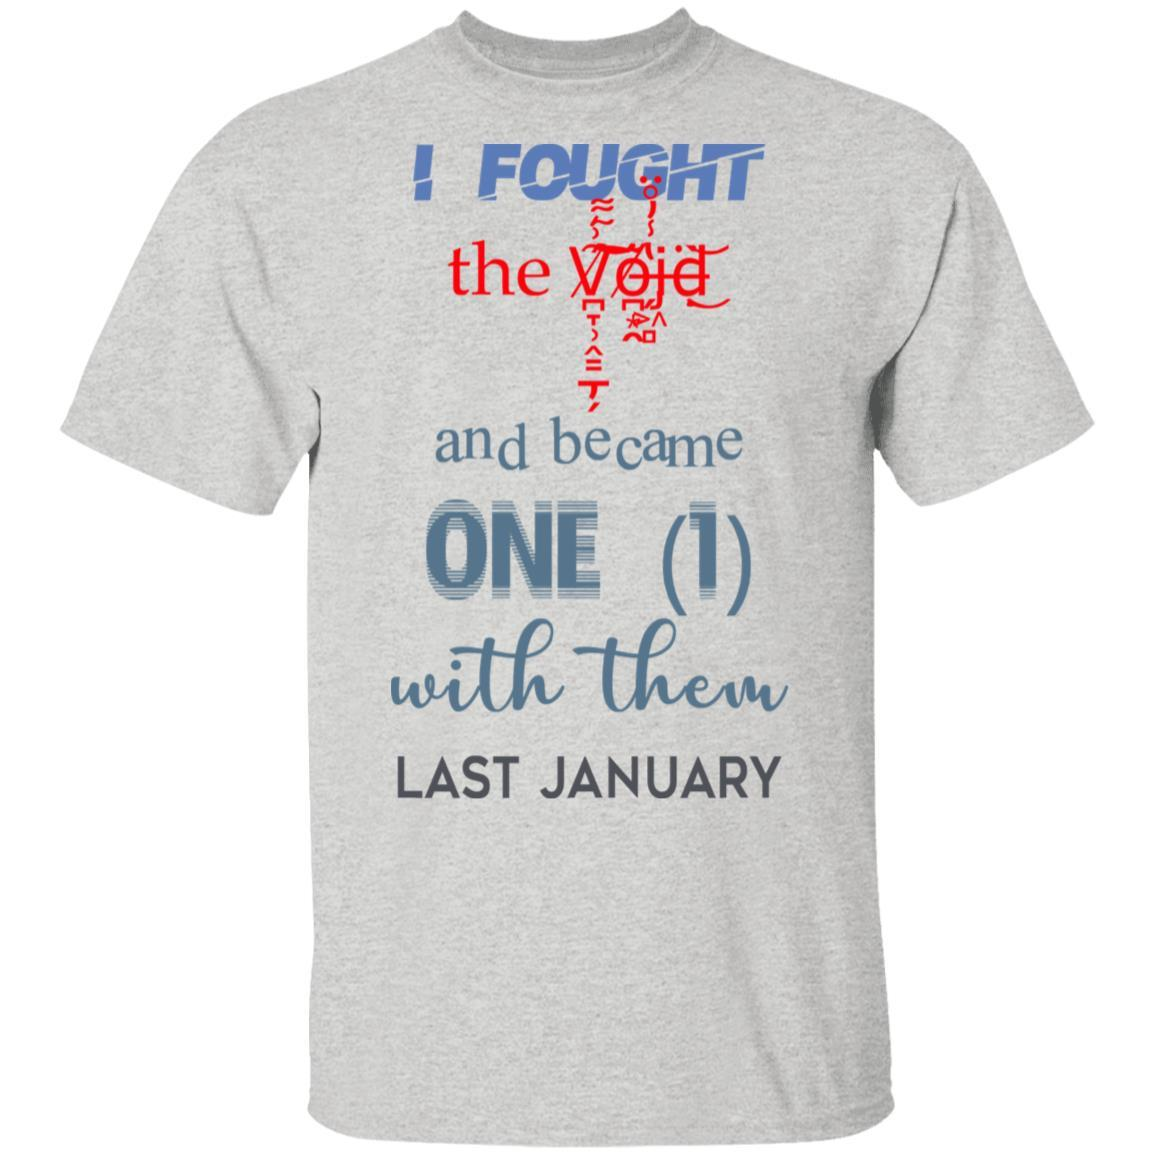 I Fought The Vojd And Became One With Them Last January T-Shirts, Hoodies 1049-9952-87130081-48184 - Tee Ript